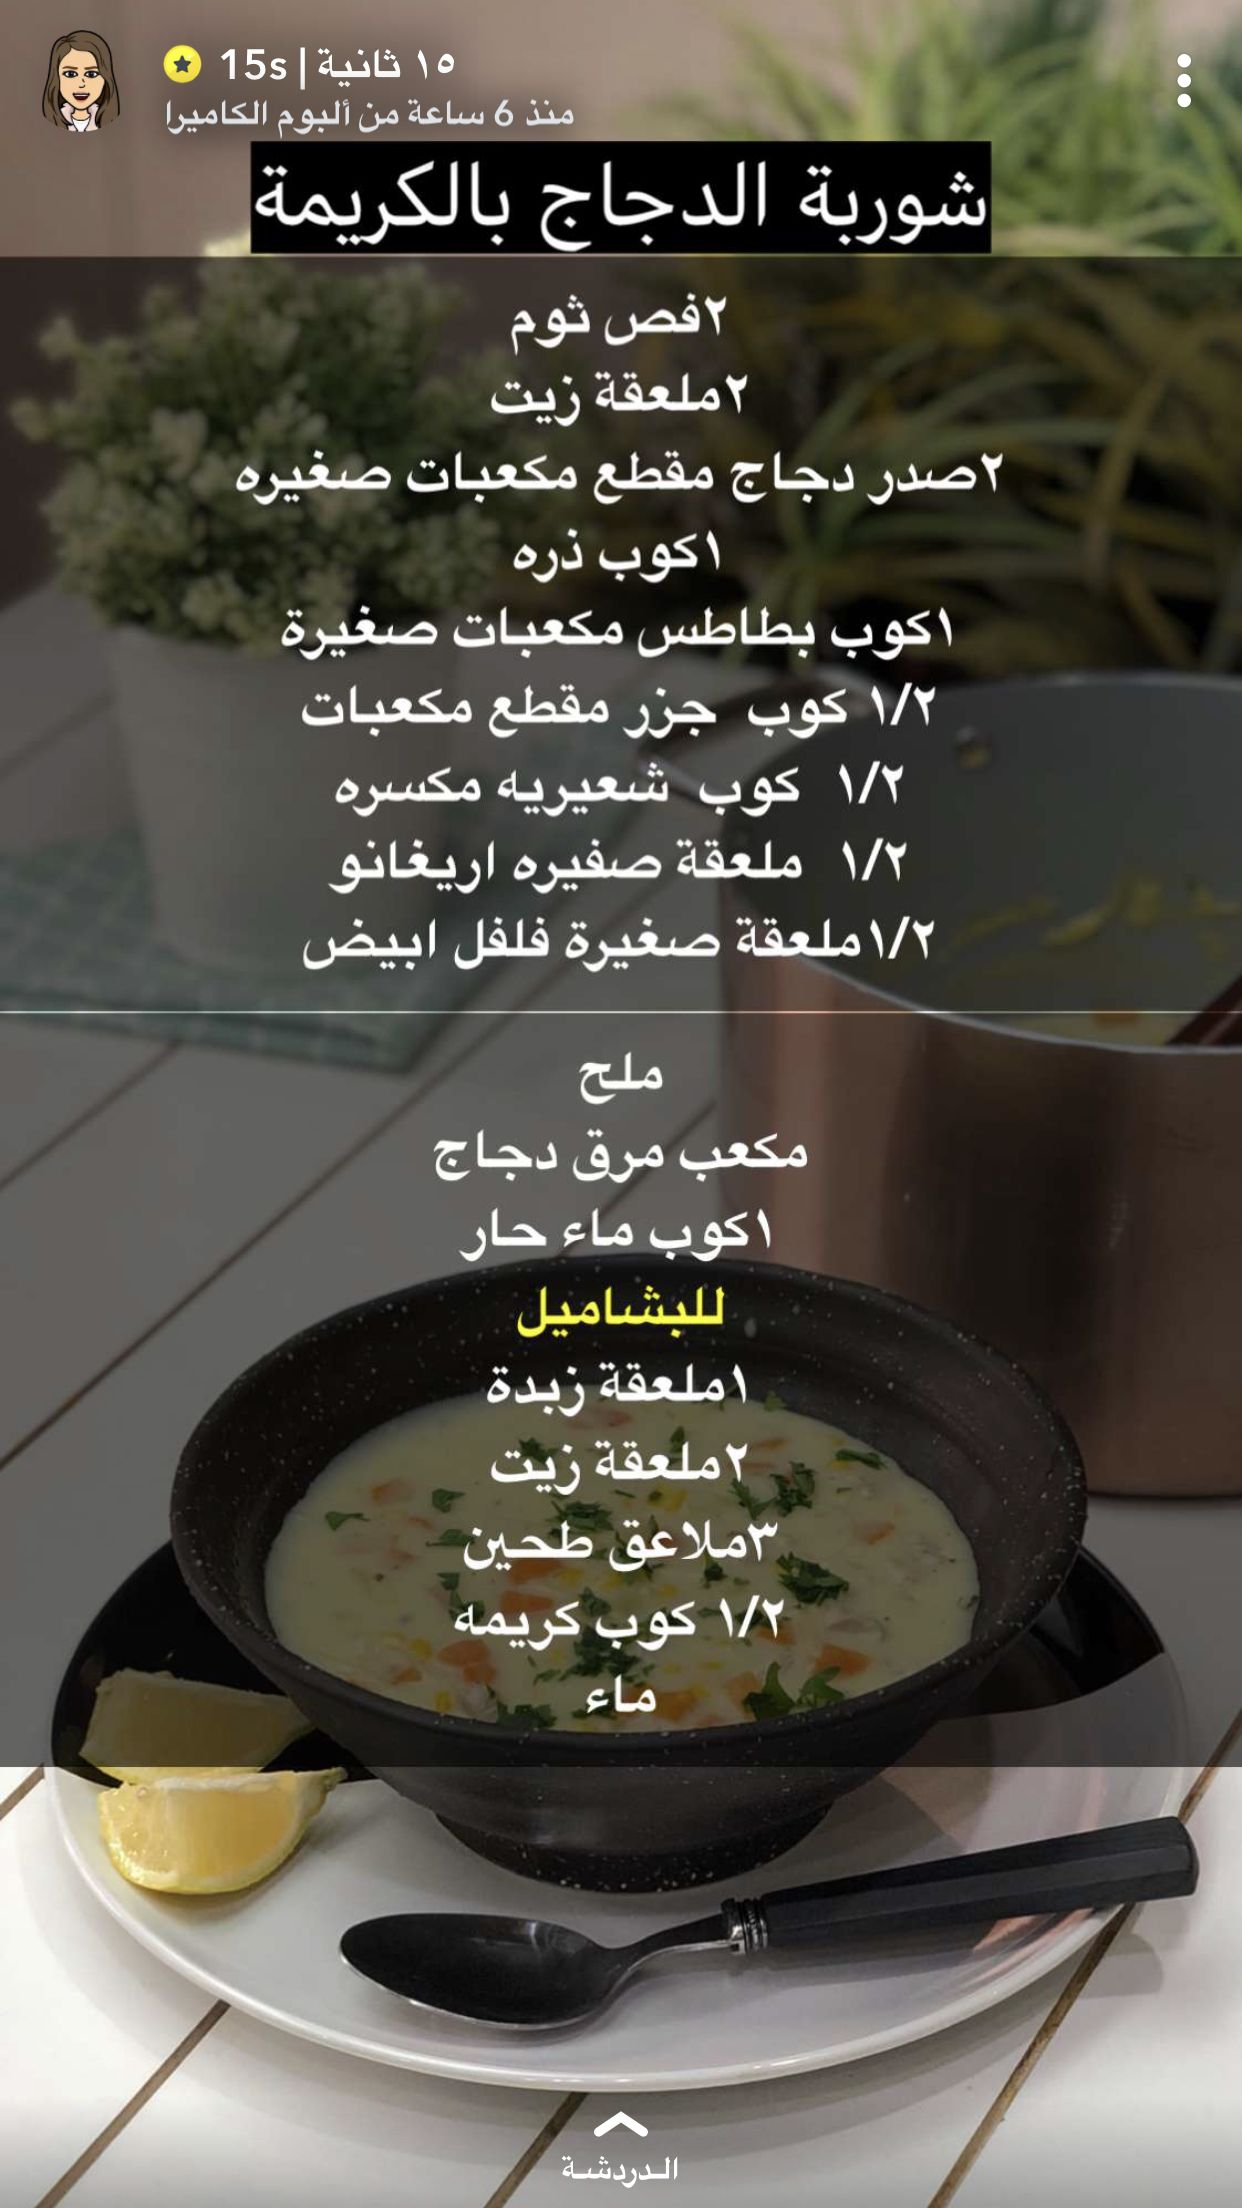 Pin By Norah M On ابداع تونه Cookout Food Food Food Receipes